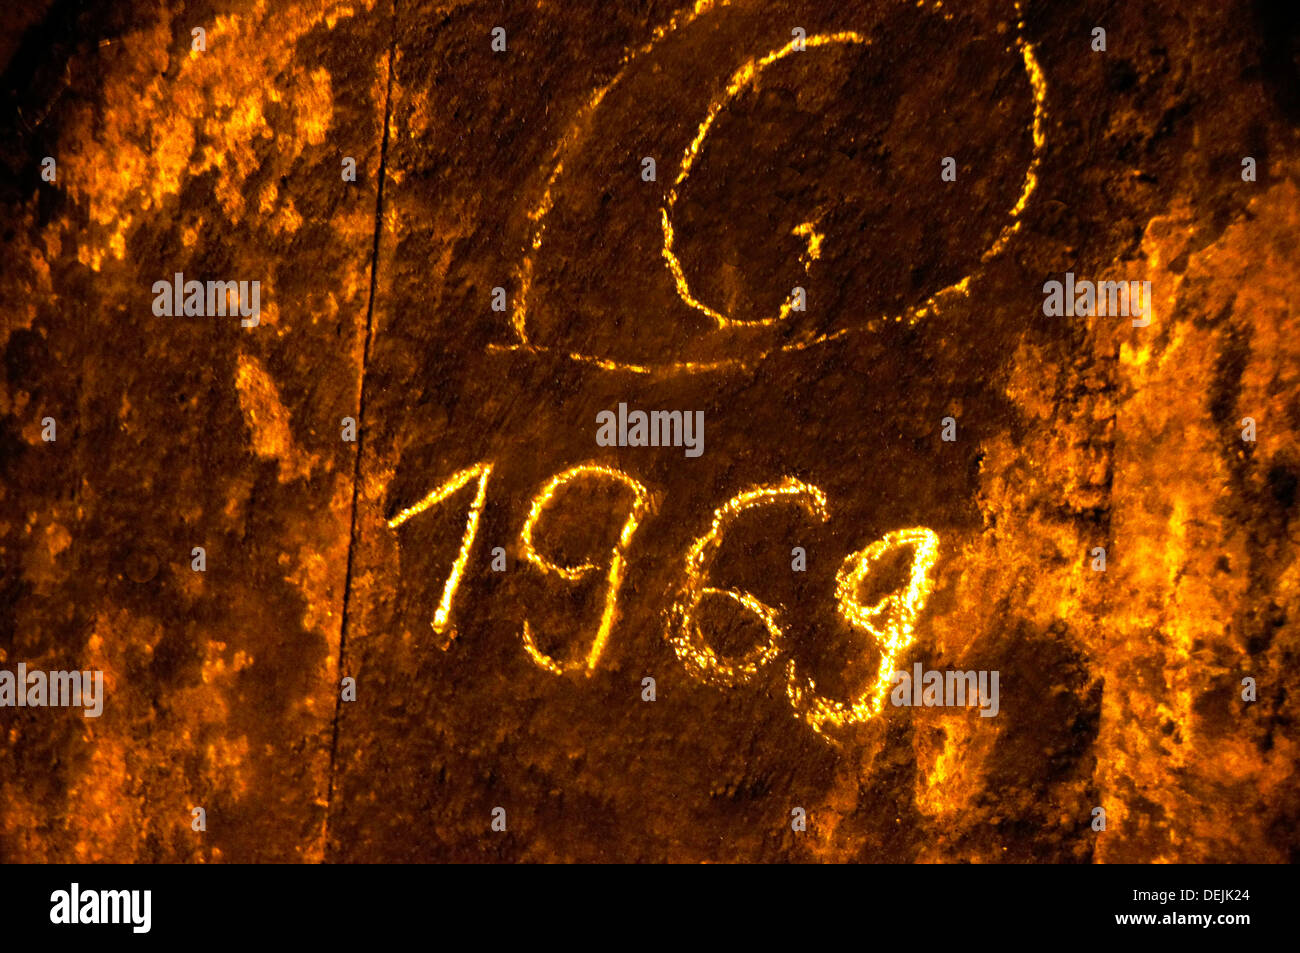 A 1969 Armagnac barrel of Jean Bon estate, Toujouse, Gers, Midi-Pyrenees, France - Stock Image